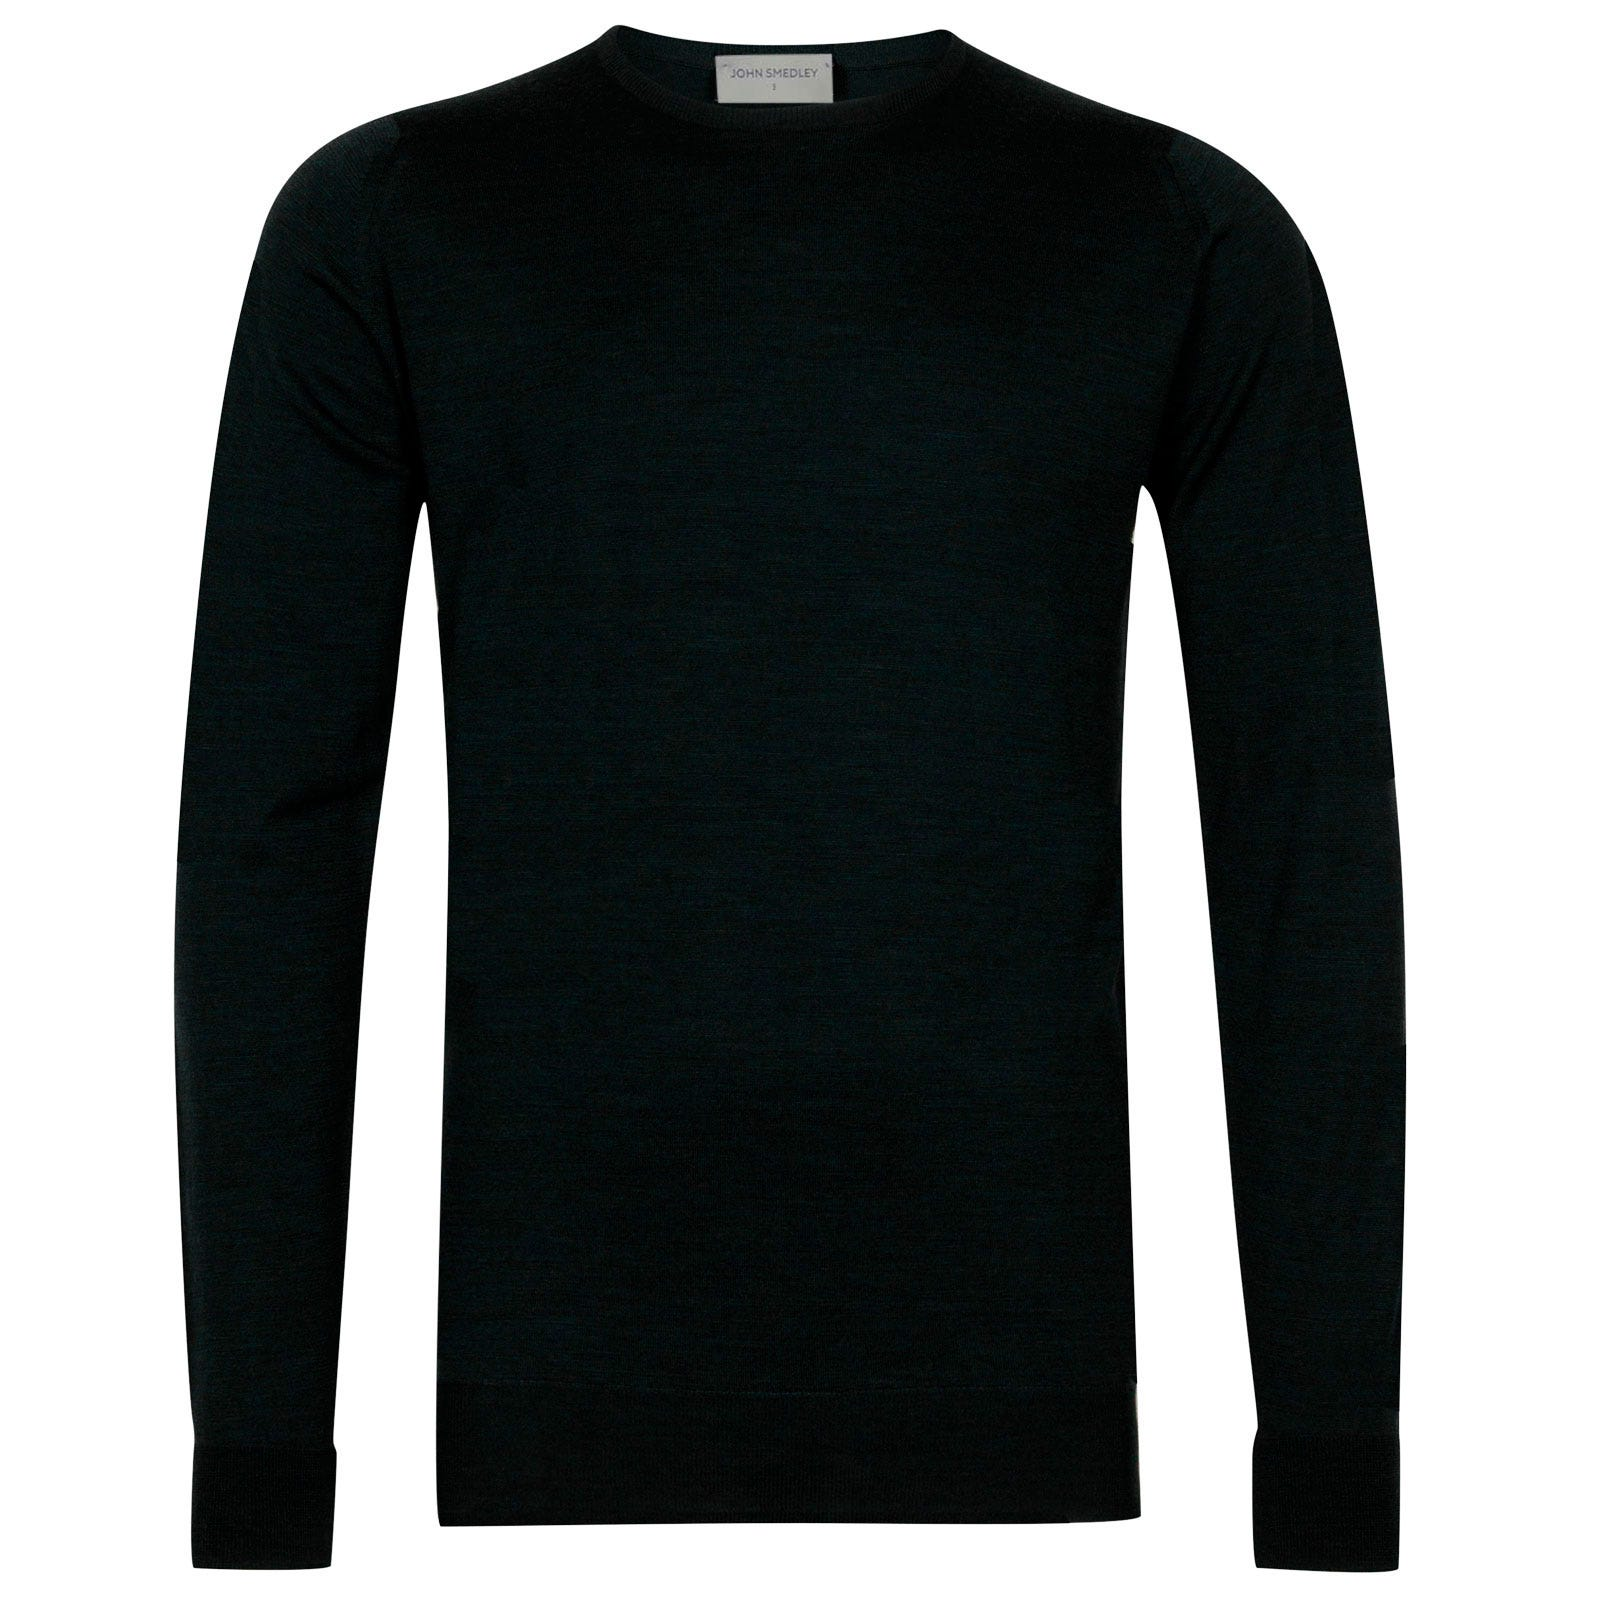 John Smedley marcus Merino Wool Pullover in Racing Green-M